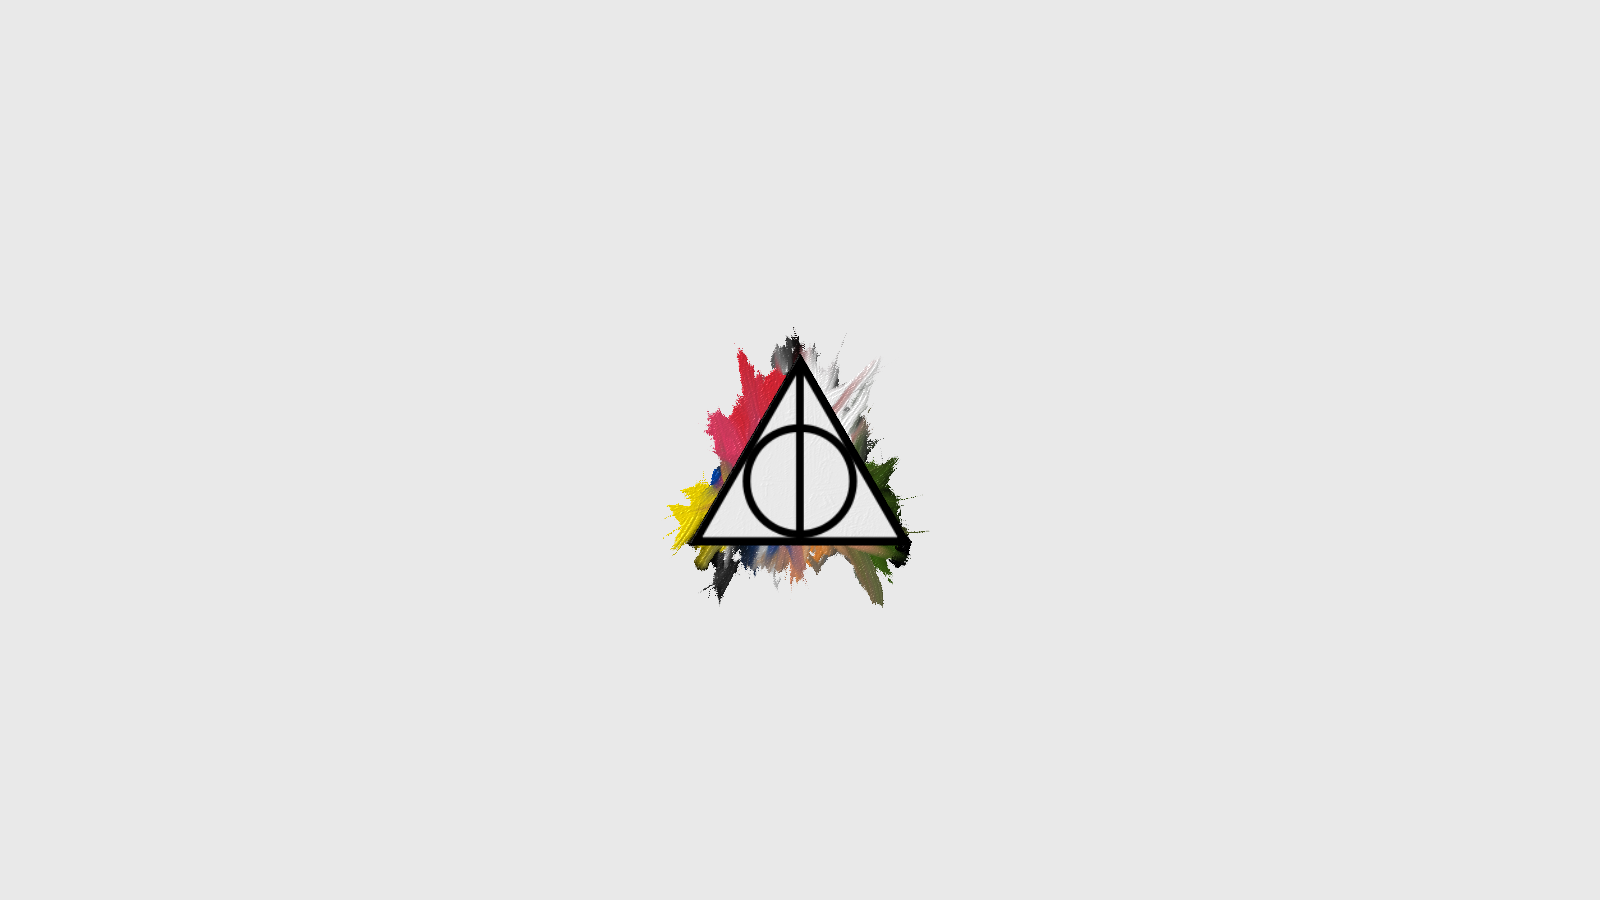 Most Inspiring Wallpaper Harry Potter Fanart - harry_potter_s_life_white_by_cirogiso-d6rrvoi  Trends_429177.png